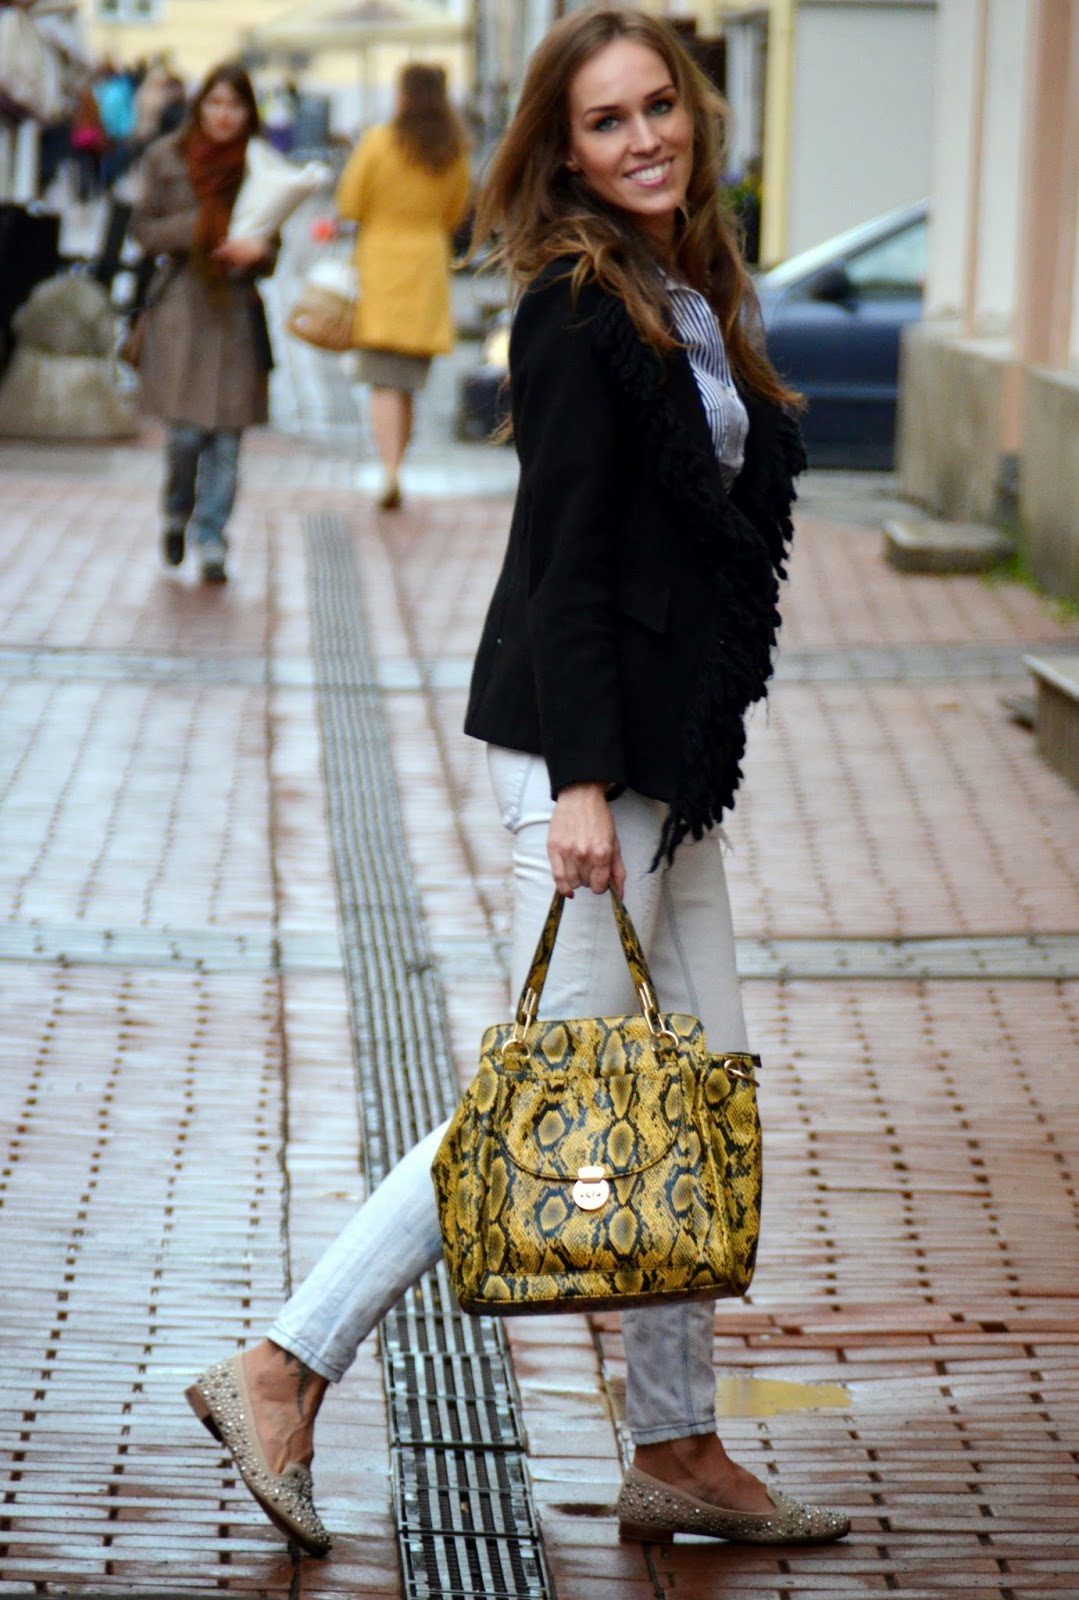 black-white-casual-outfit-yellow-bag